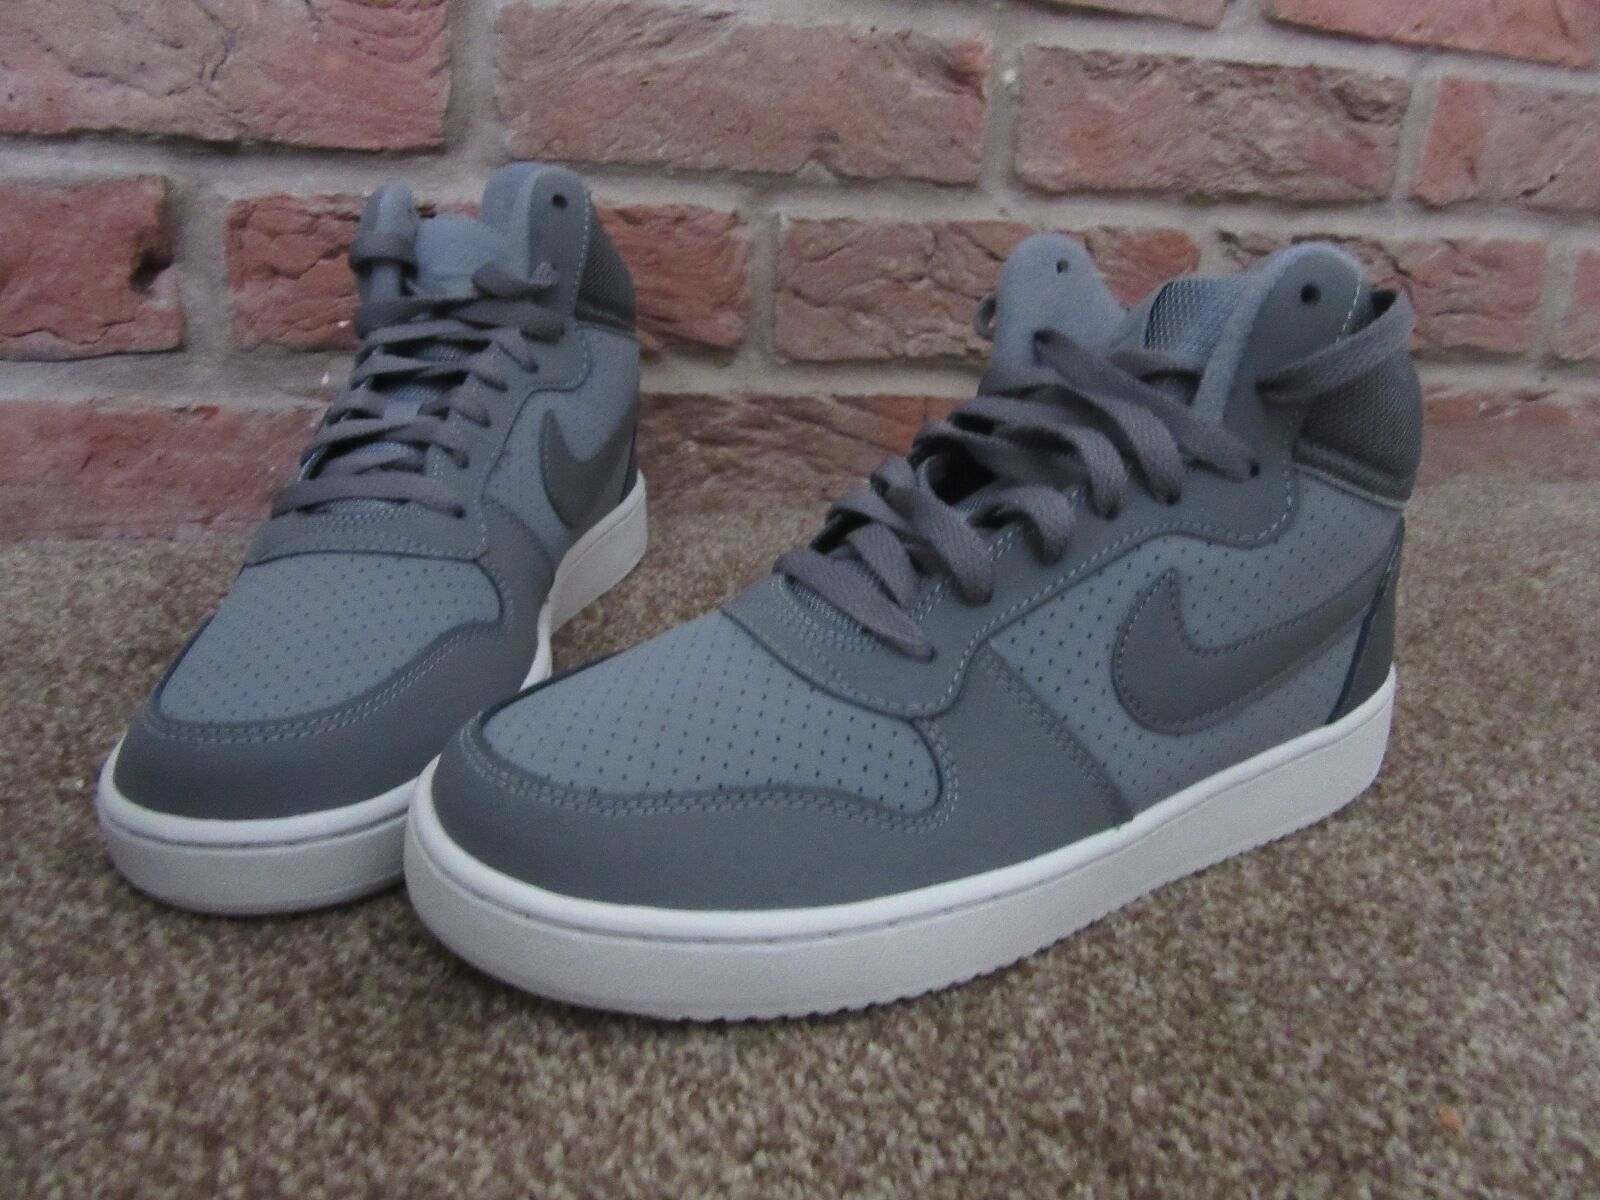 NEW UK 5.5 Damenschuhe Nike Trainers Cour Grau Mid Mid Grau Top Lace UP Perforated Pattern ecdd55